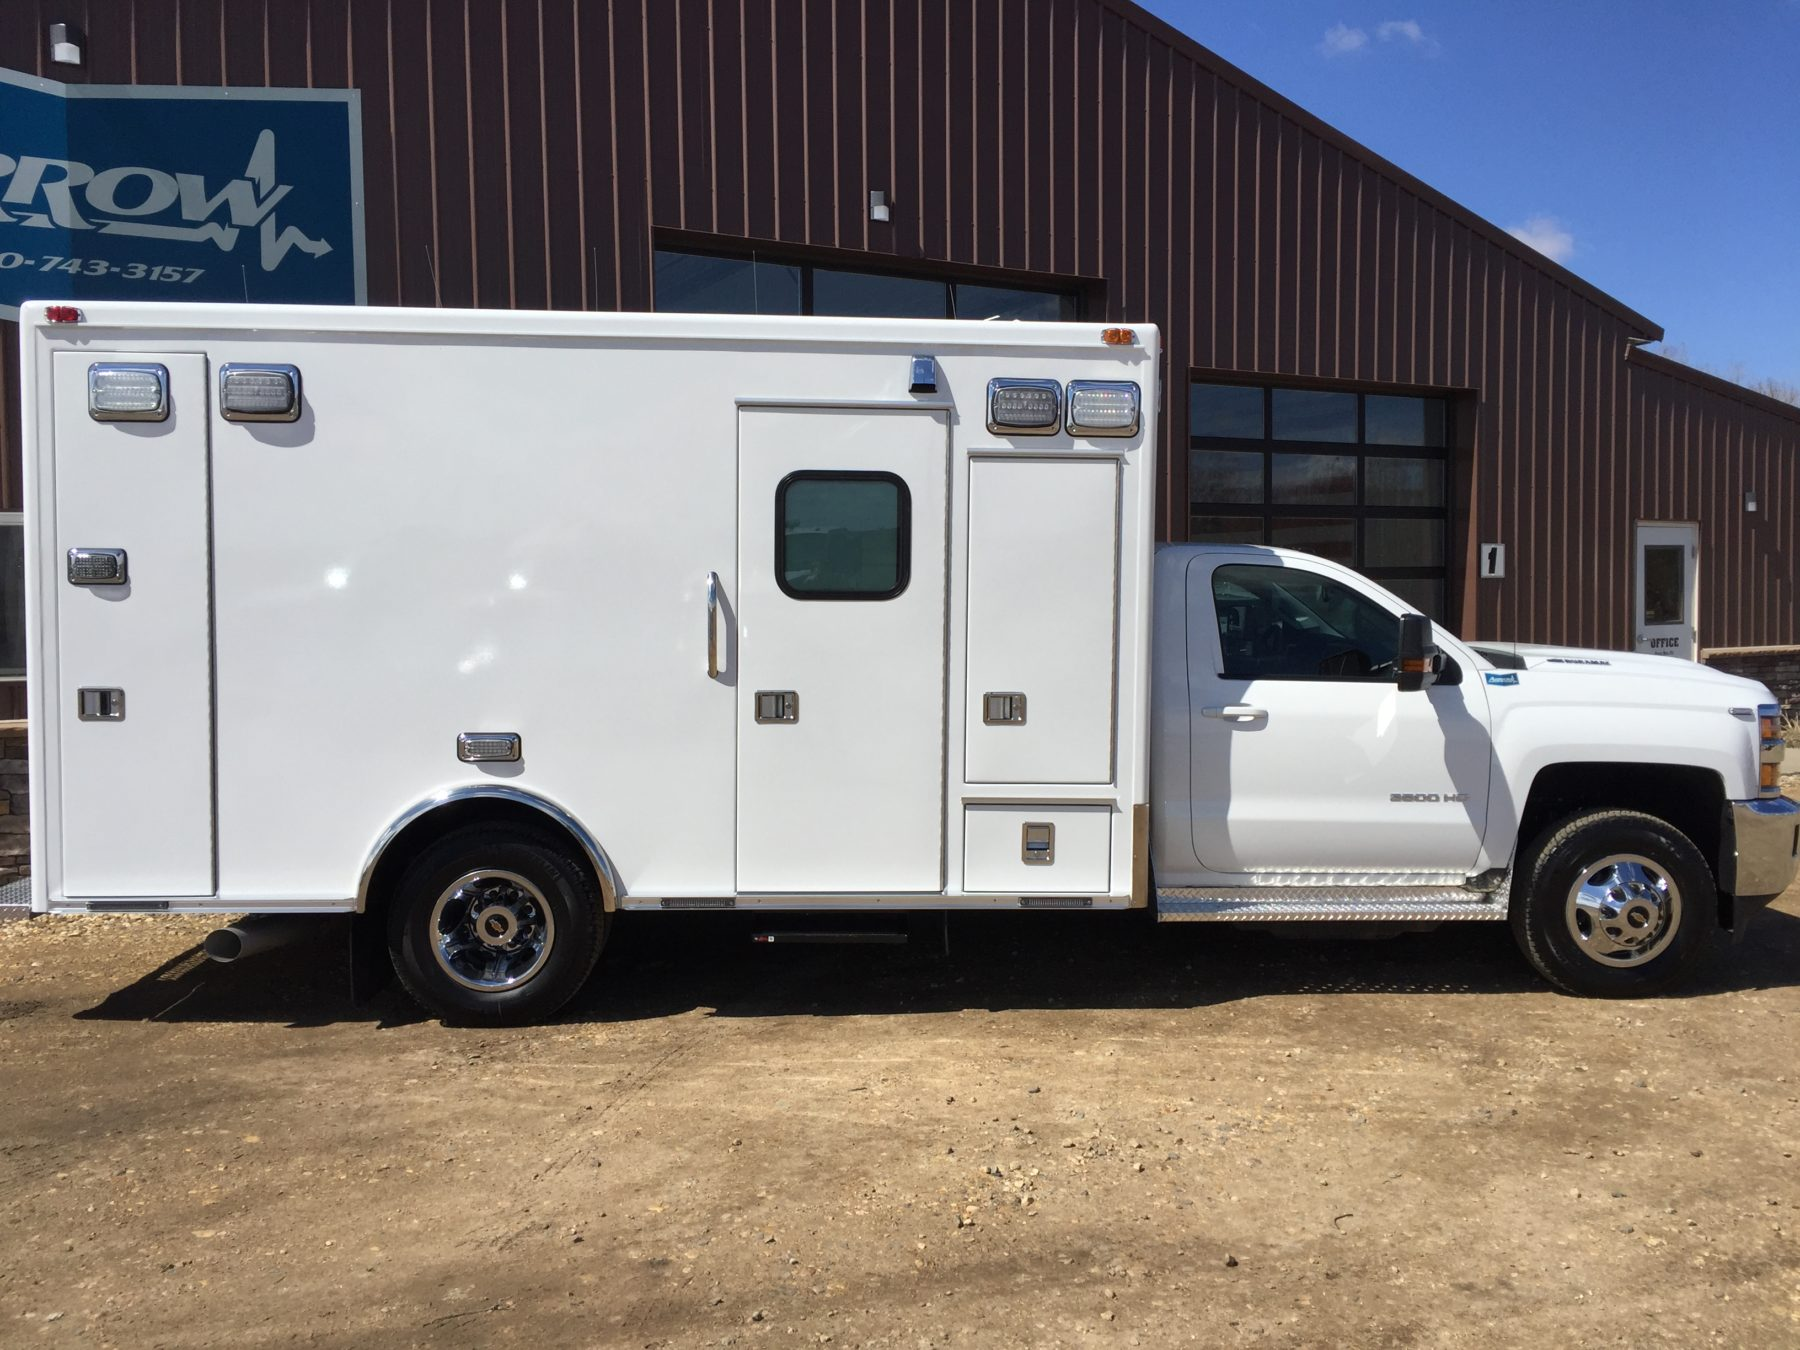 2017 Chevrolet K3500 4x4 Type 1 Ambulance For Sale – Picture 4